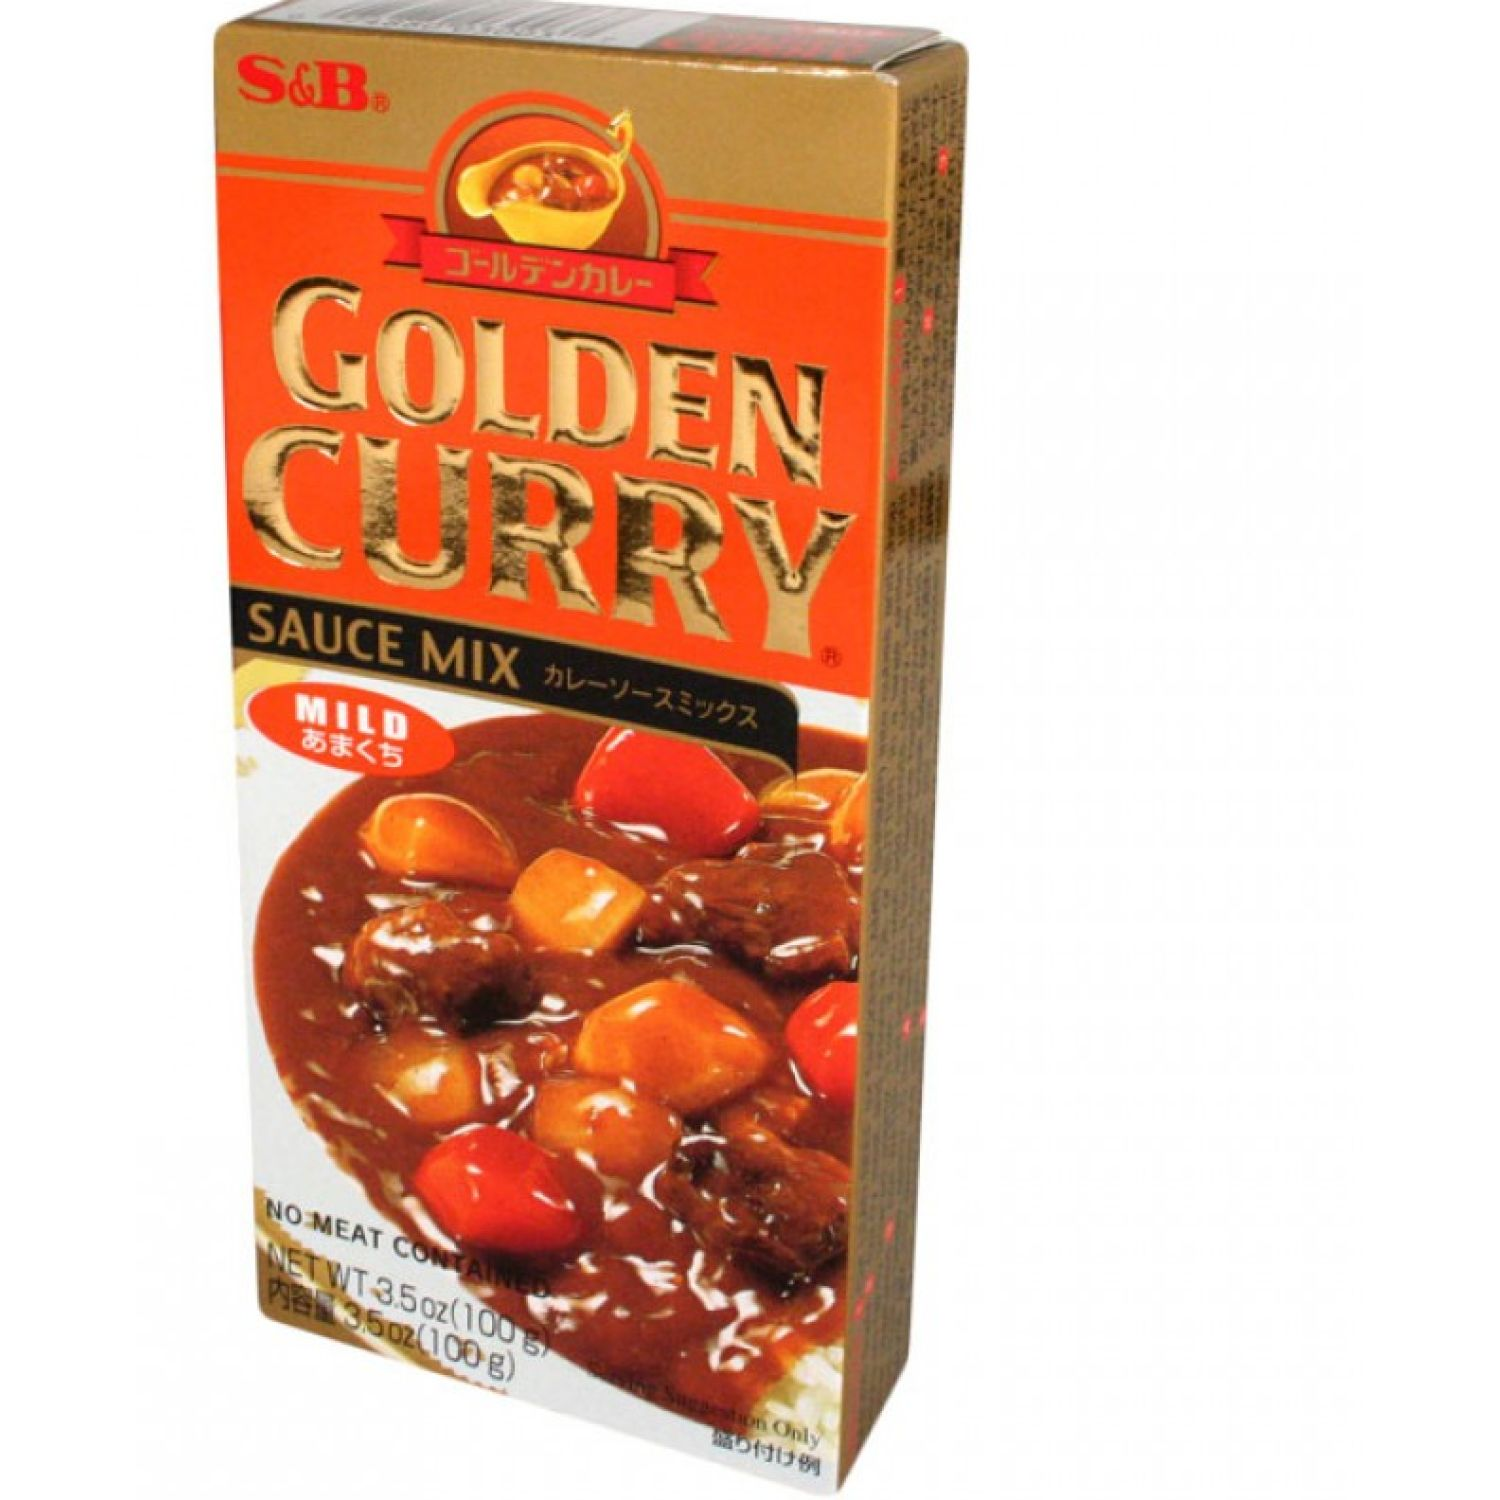 S&B S&b Golden Curry Mild 3.25oz SIN COLOR Salsa de curry